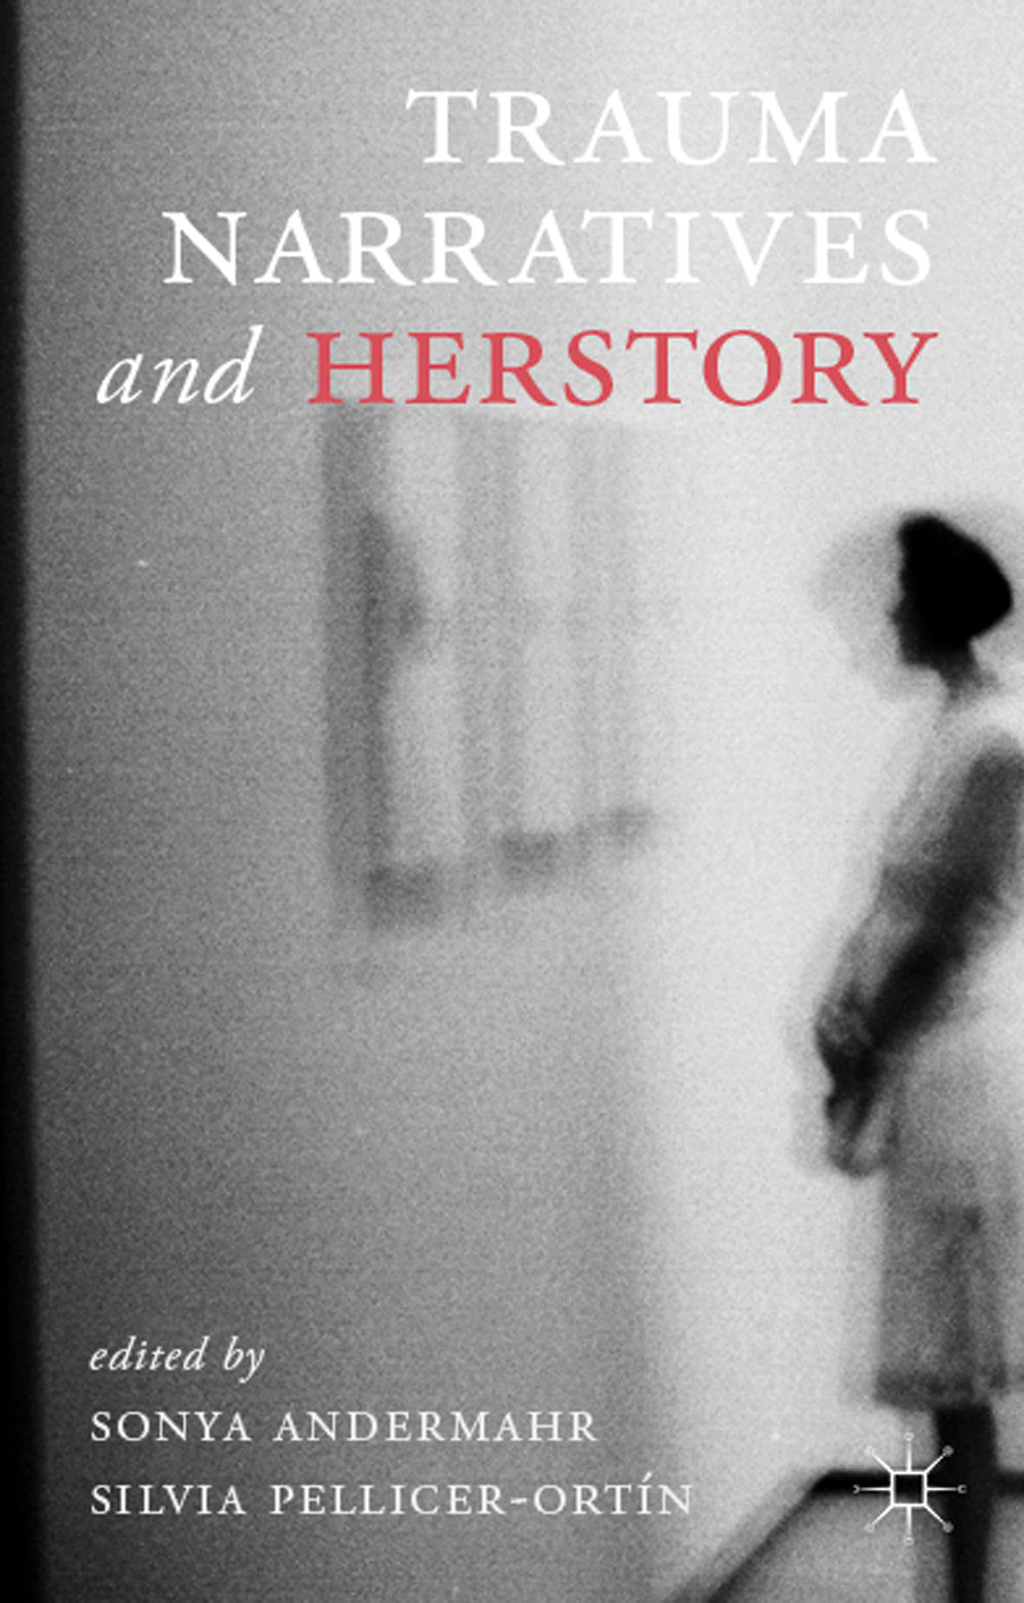 Trauma Narratives and Herstory